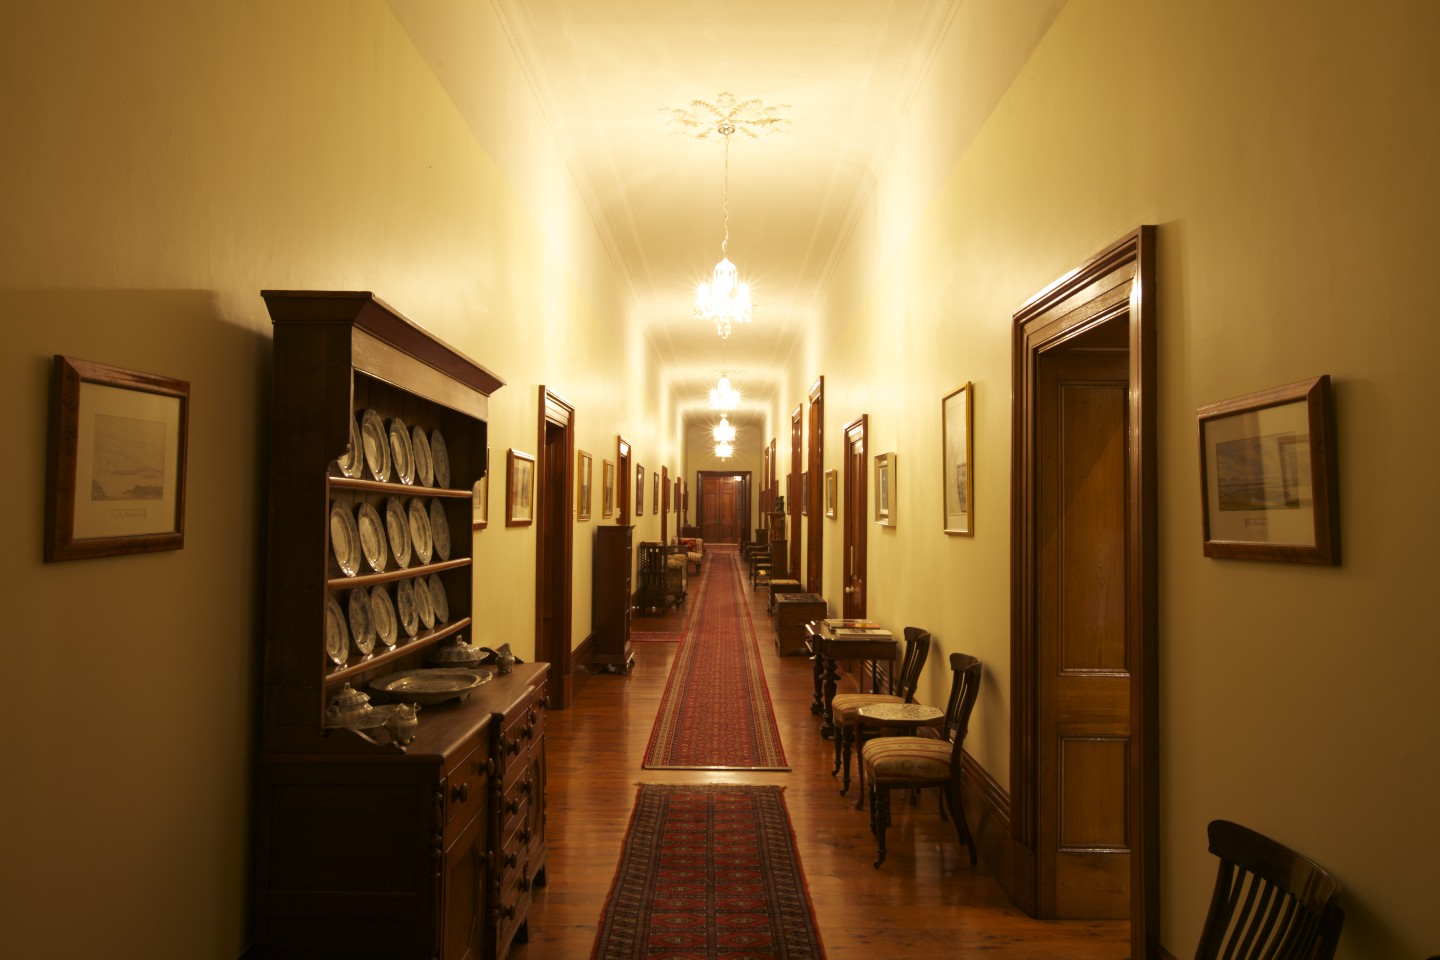 20 Long Corridor Design Ideas Perfect for Hotels and ... |House Corridors